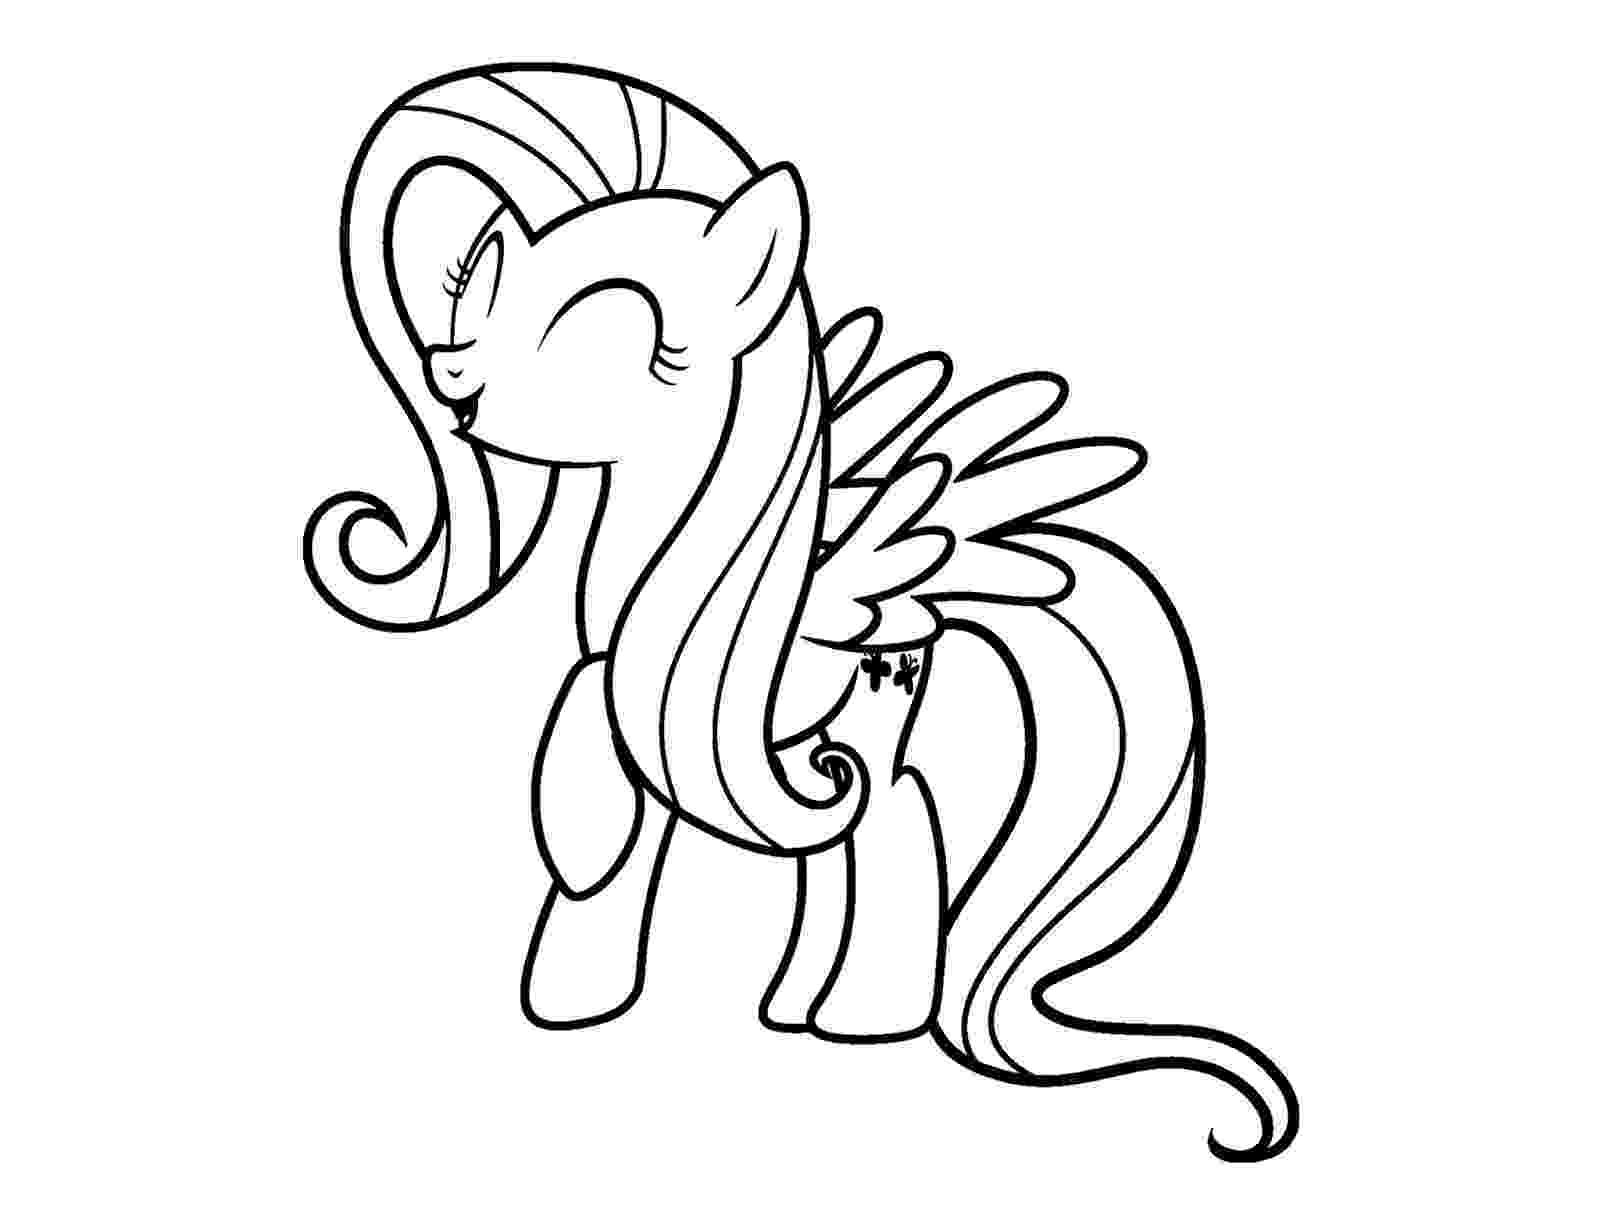 fluttershy coloring fluttershy coloring pages best coloring pages for kids coloring fluttershy